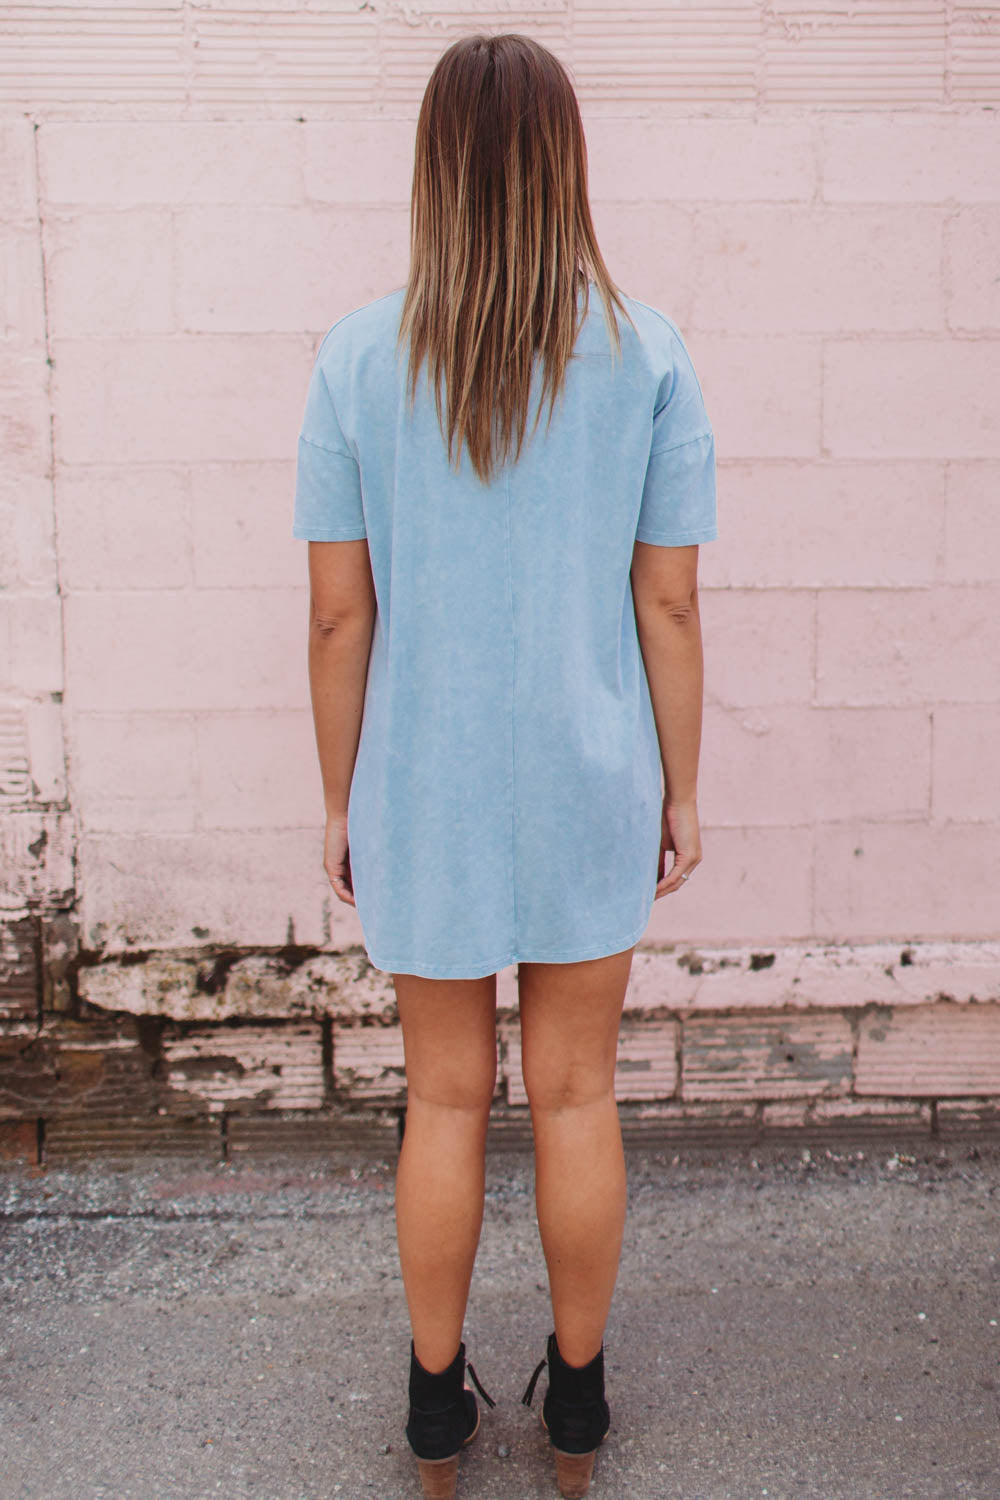 Dress - Short Sleeved Super Soft Choker Tee Shirt Dress